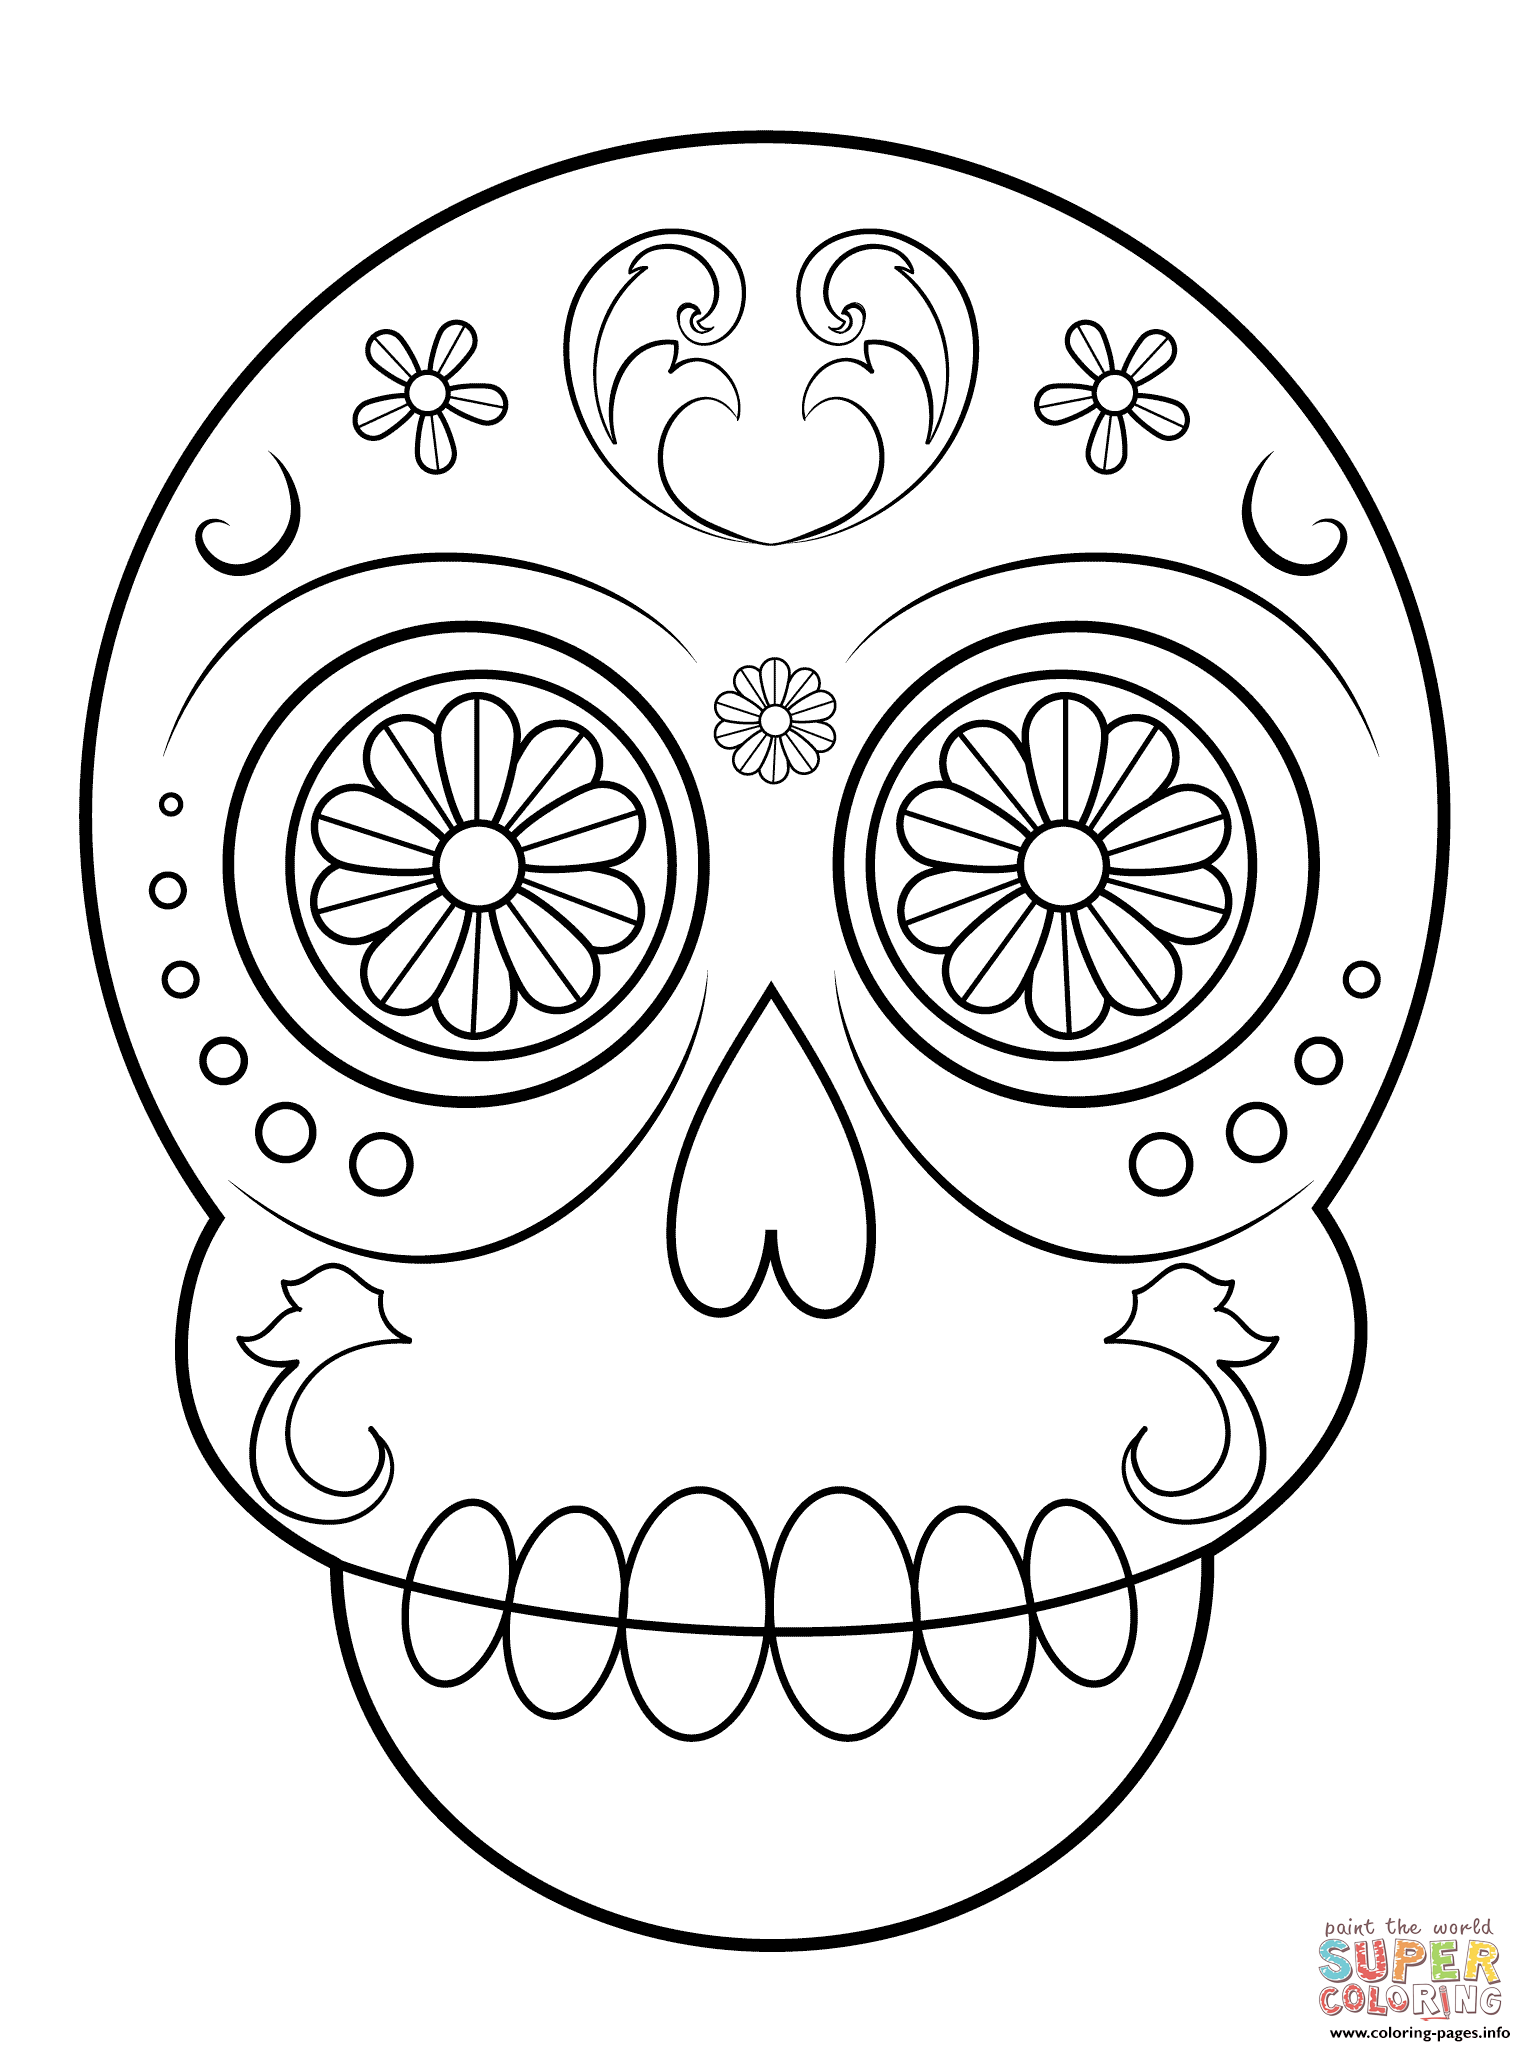 Print sugar skull simple easy coloring pages